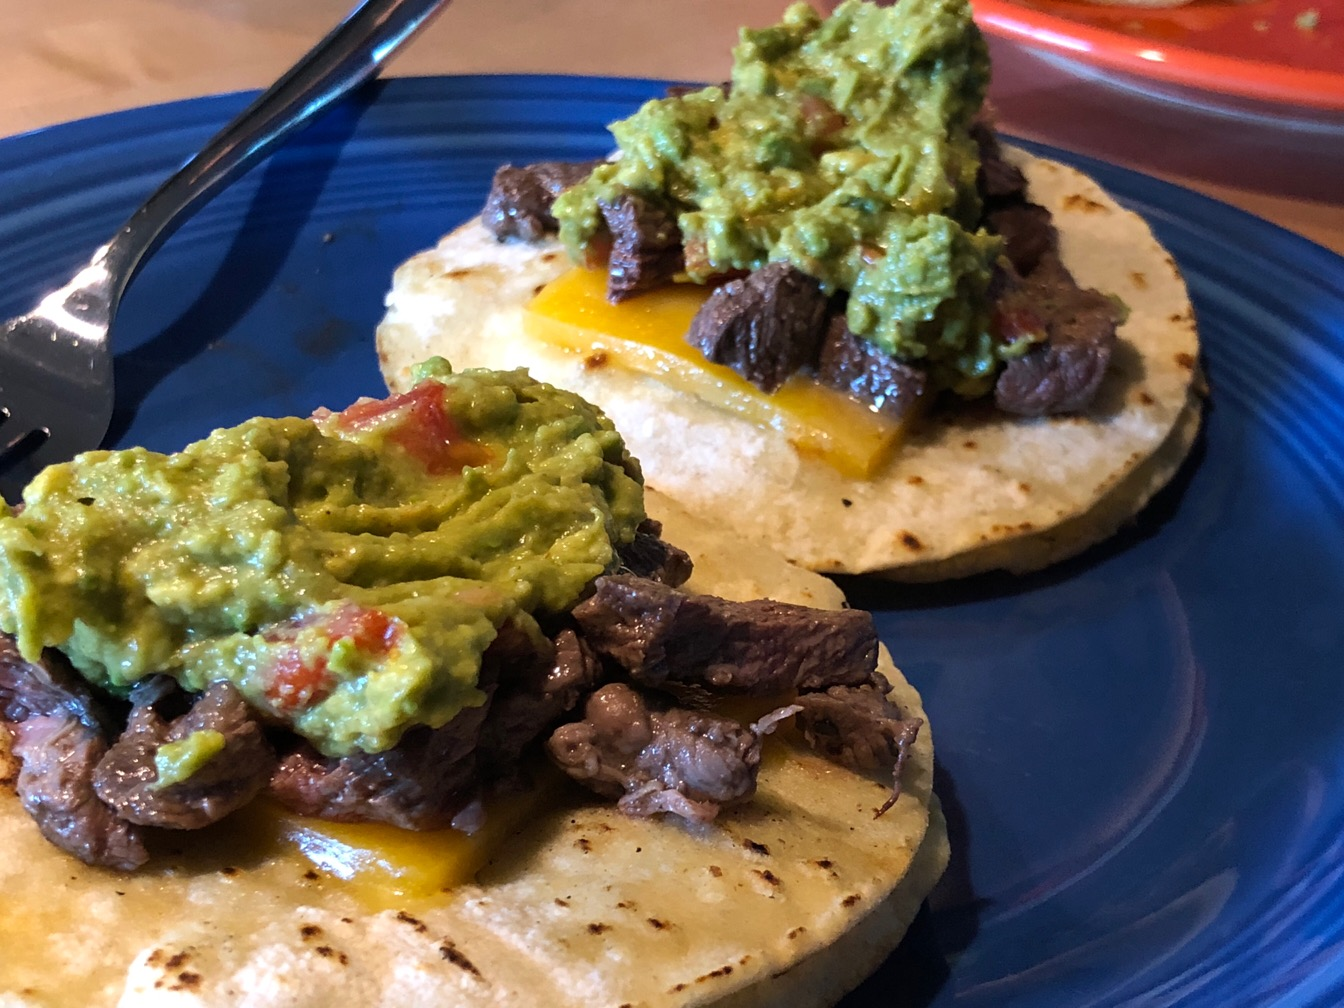 Steak and avocado tacos.